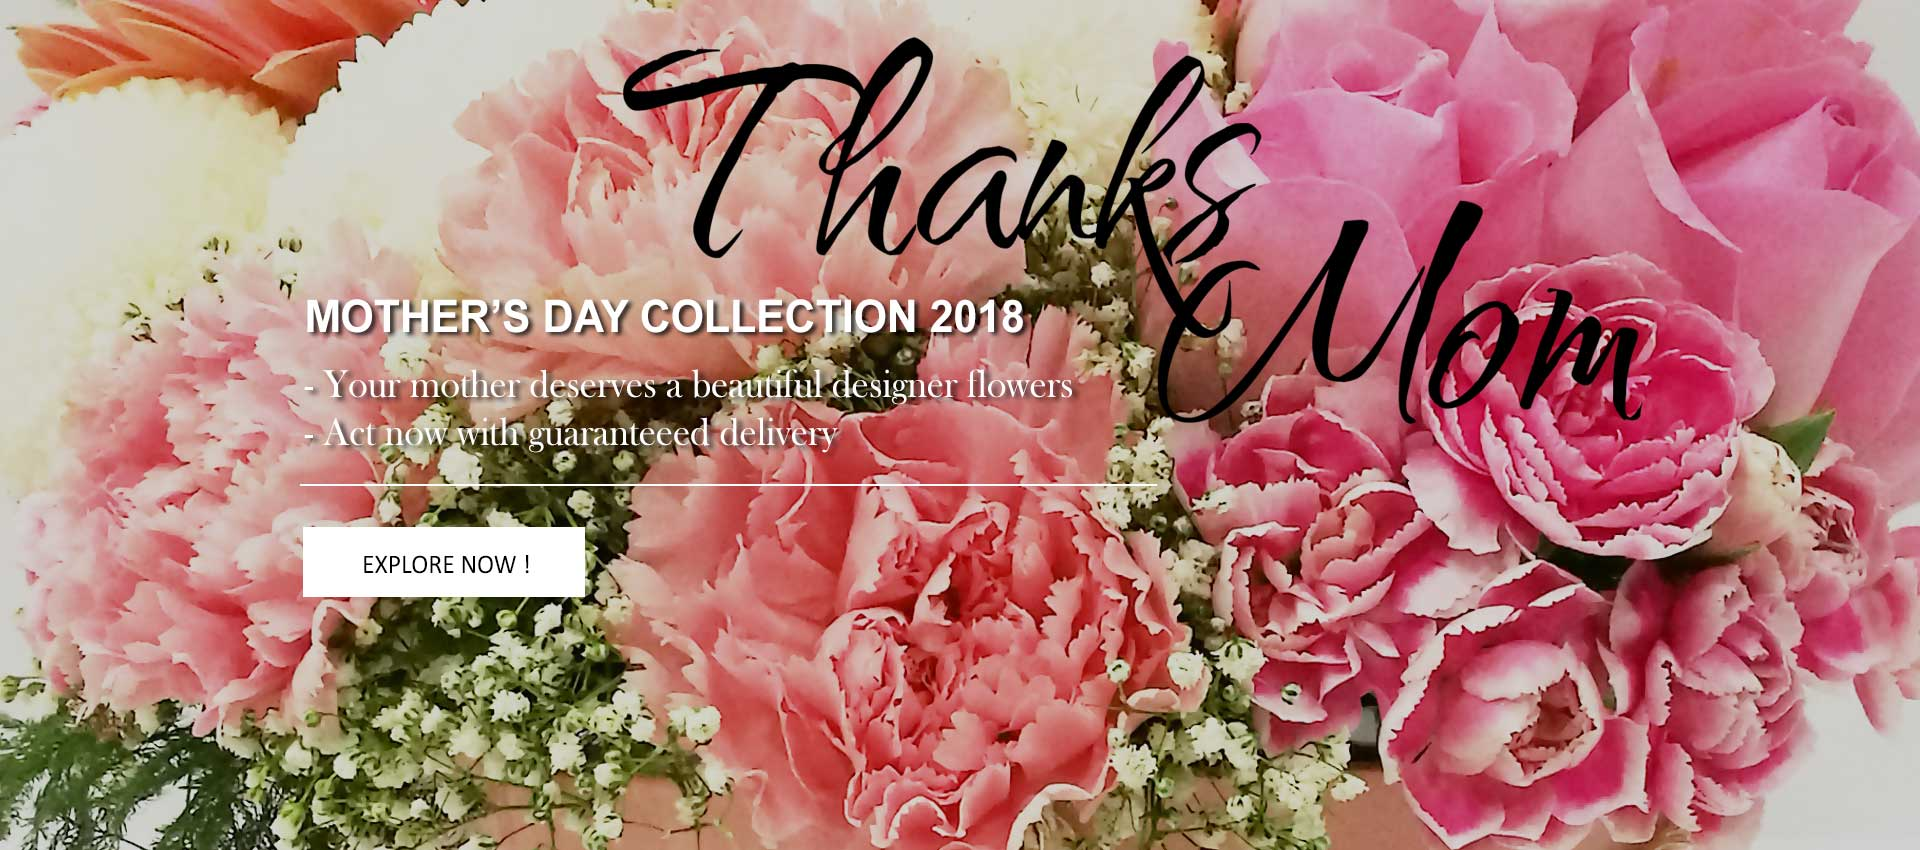 Mother's Day Collection 2018 | Send Your Mother's Day Flowers | Myflowerflorist.com